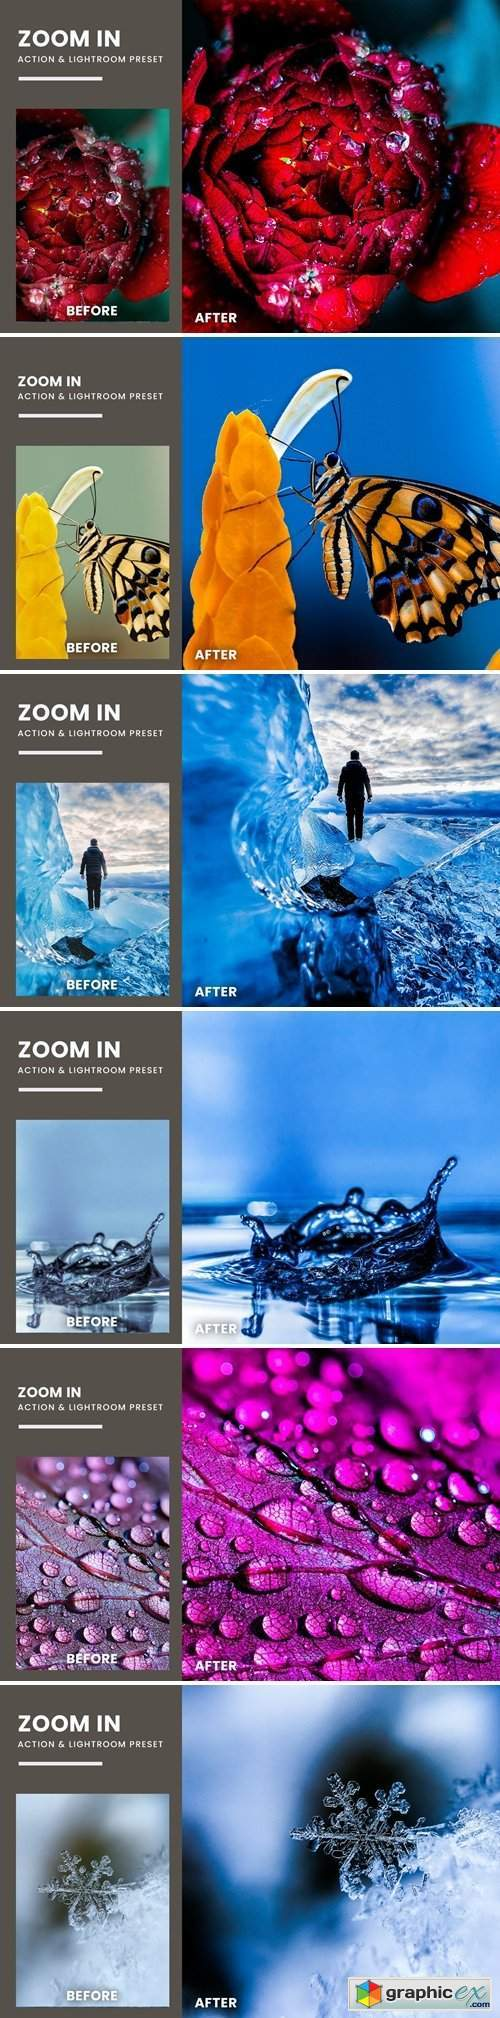 Zoom In Fx Photoshop Action & Lightrom Presets